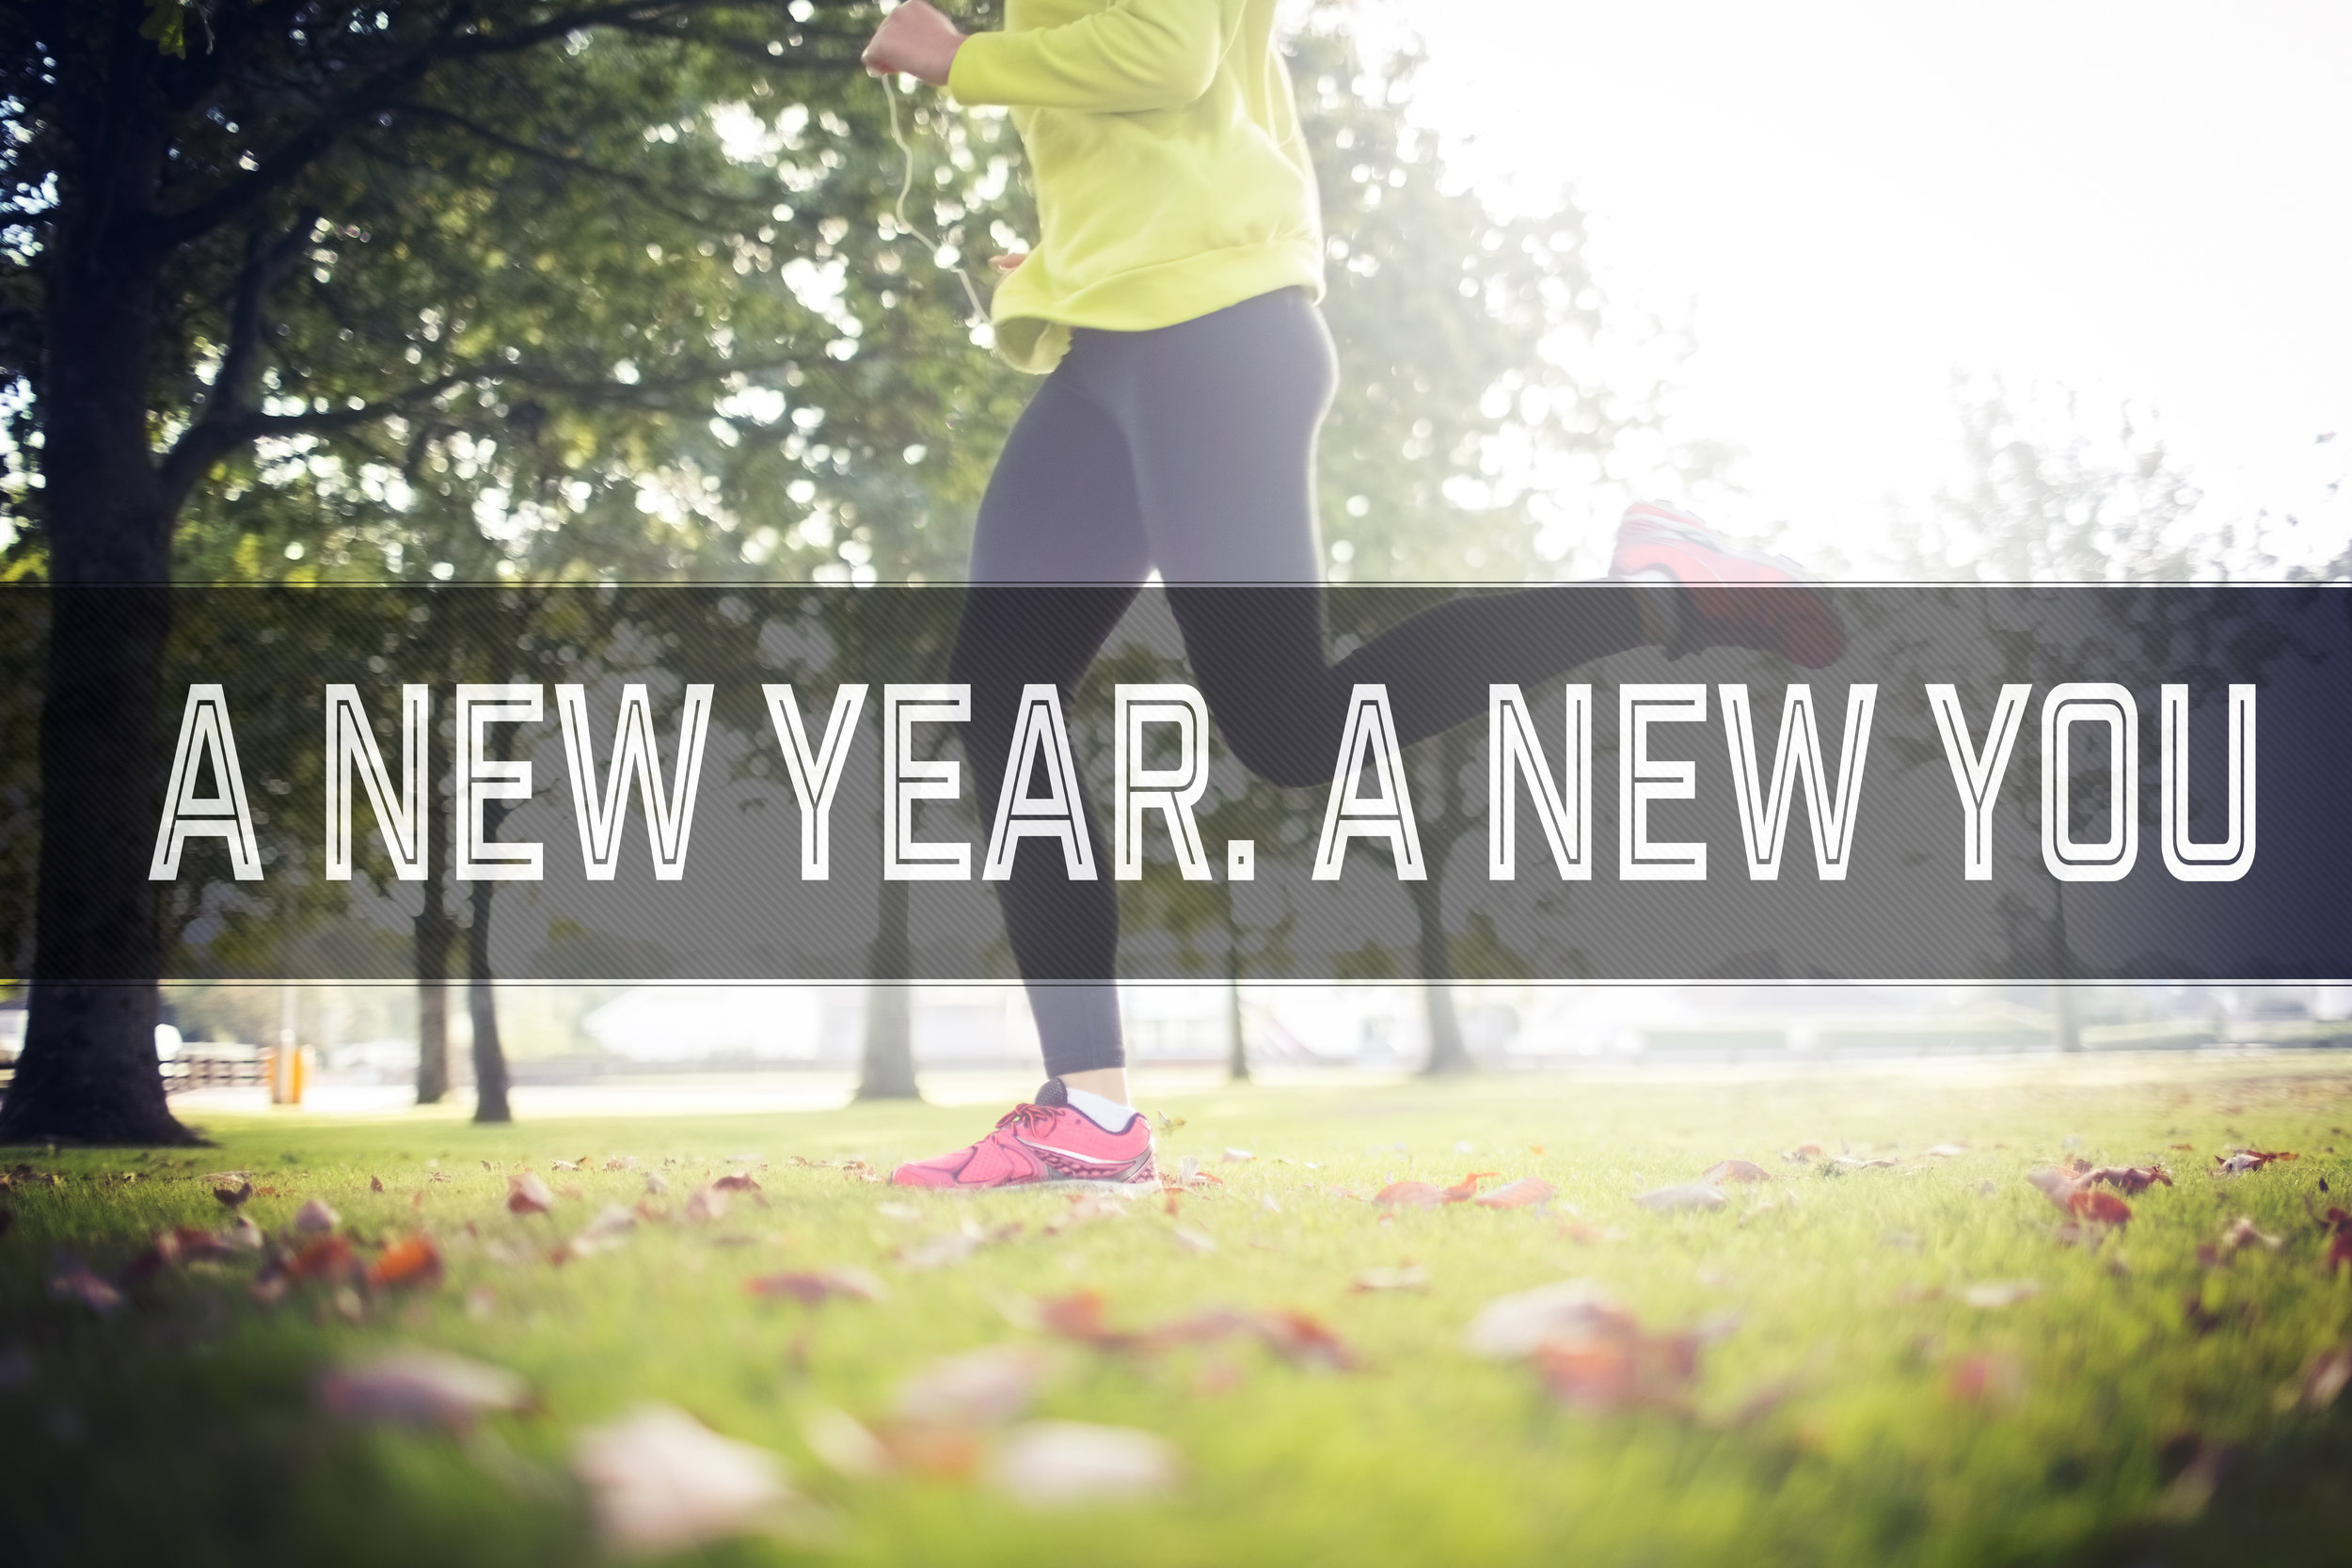 shutterstock_350535920_New Year New You.jpg